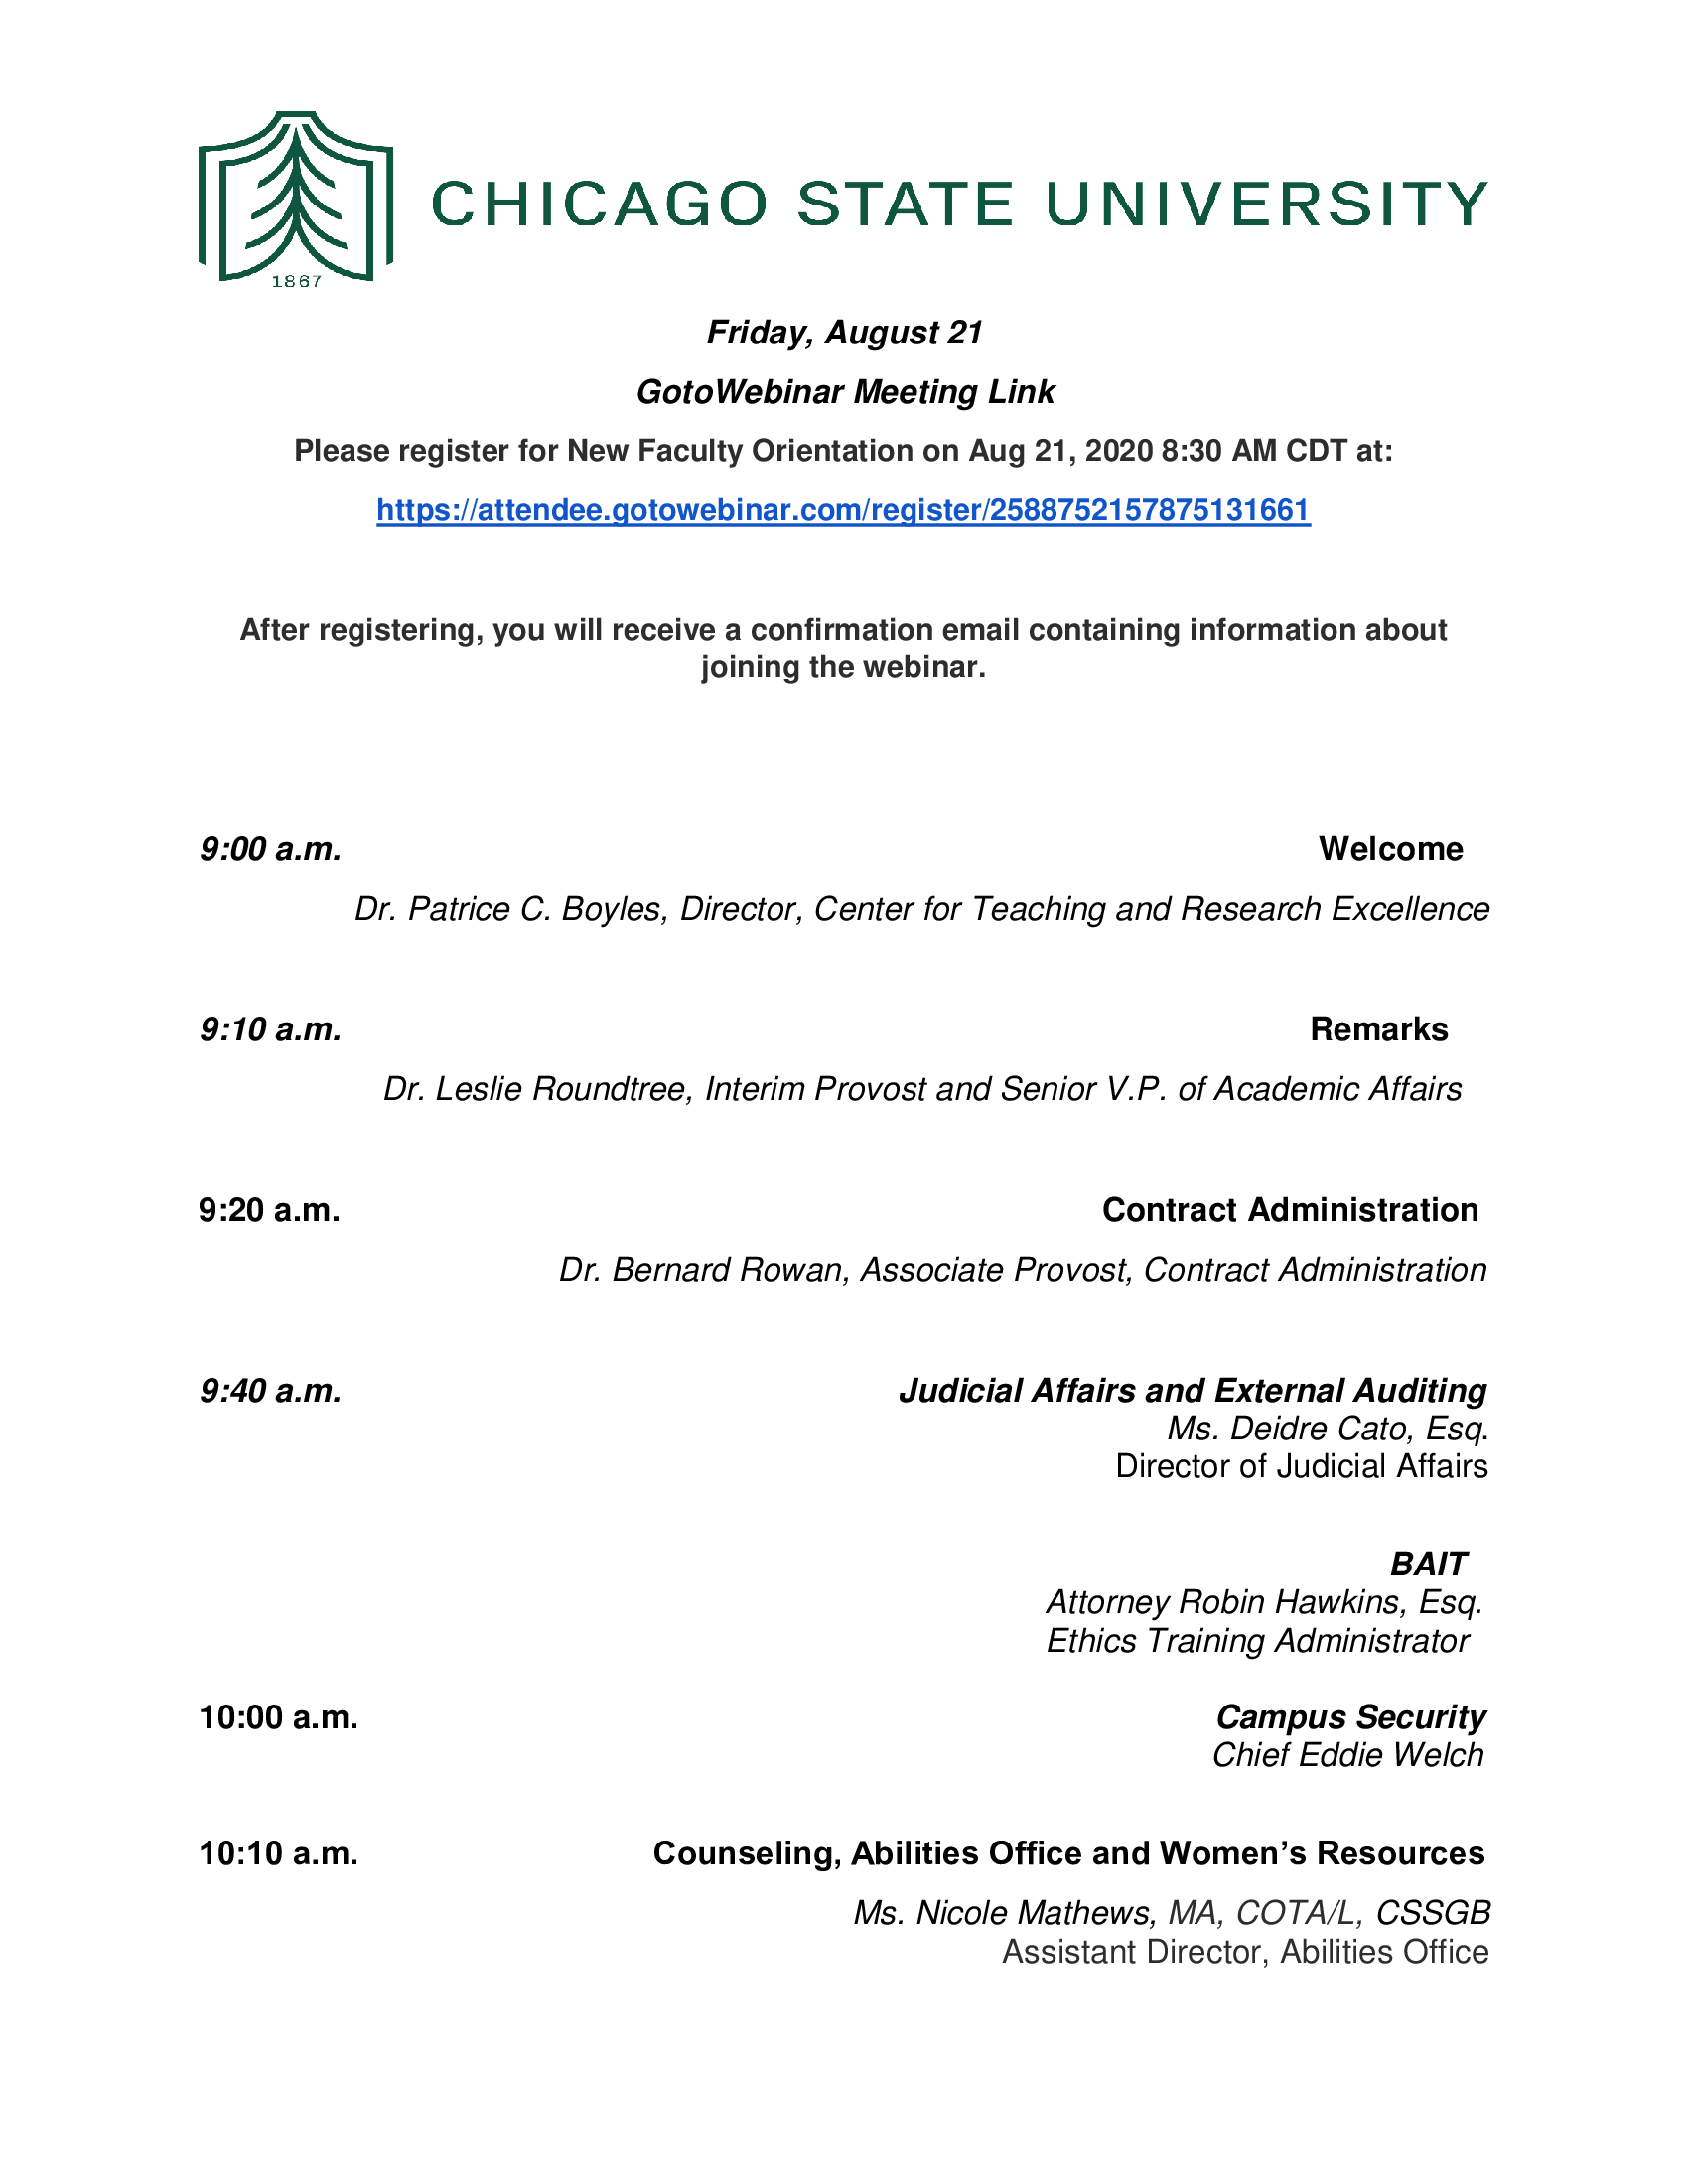 New Faculty Orientation, Friday, August 21, 2020 page 1 of 2